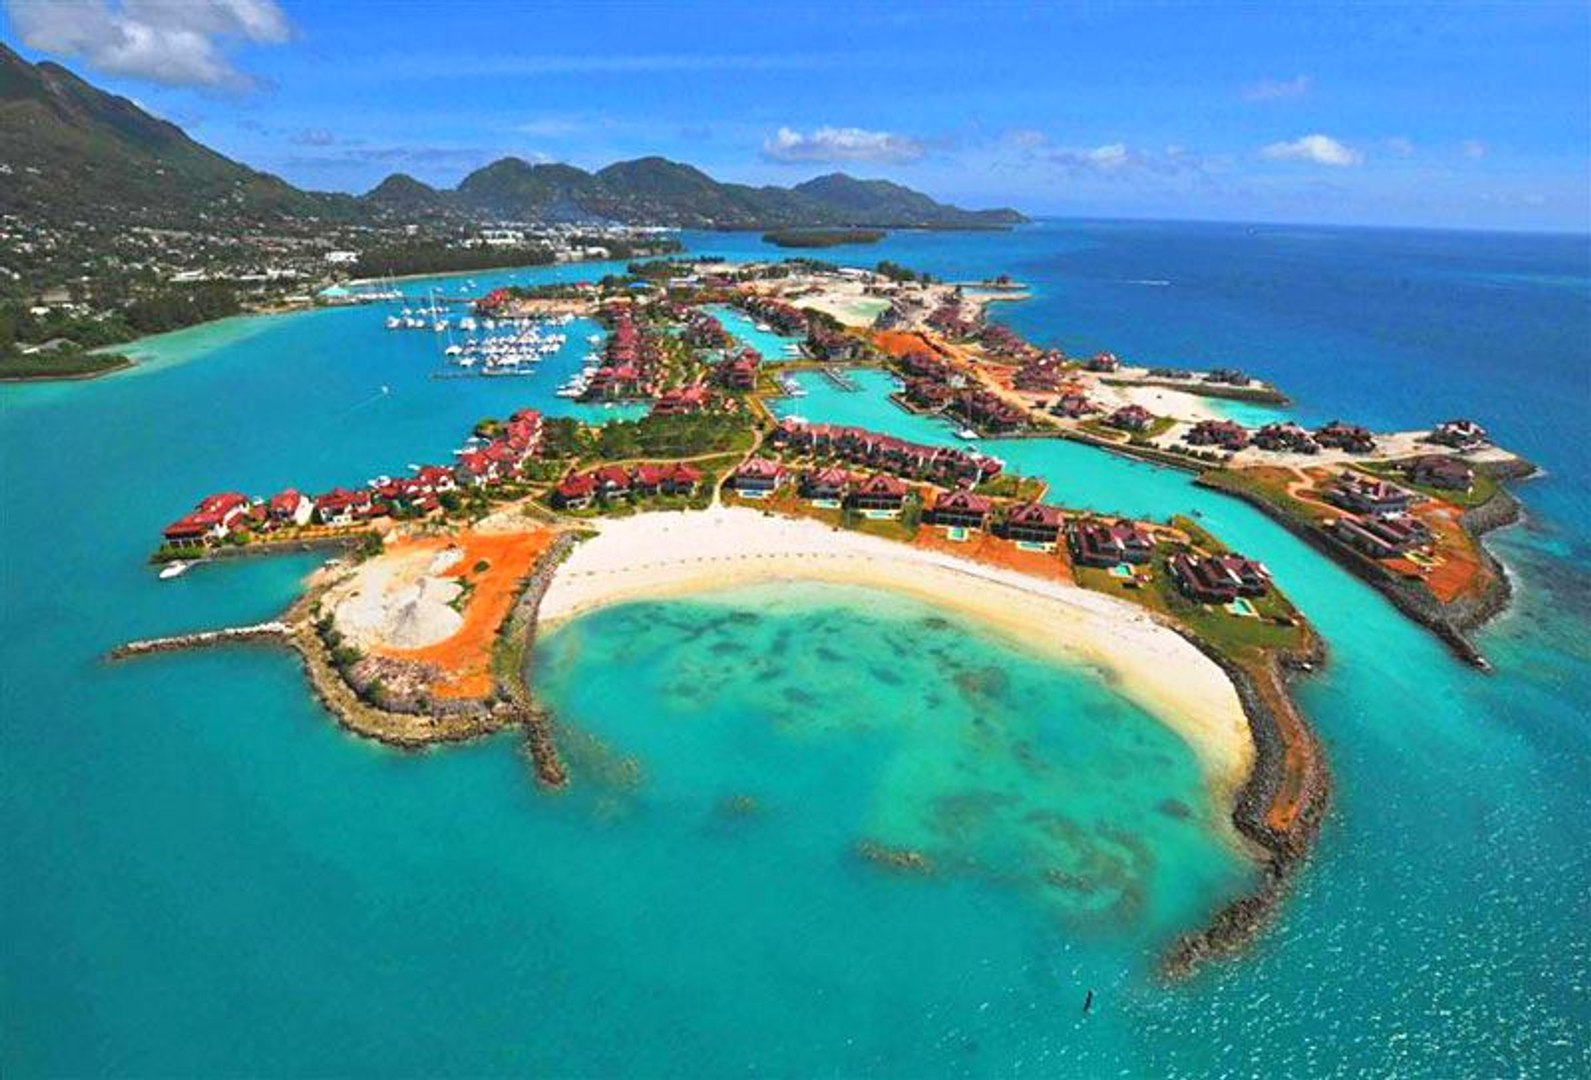 Top 25 Most Beautiful Islands in the World - A Tour Through Images - Top Most Beautiful Islands in t